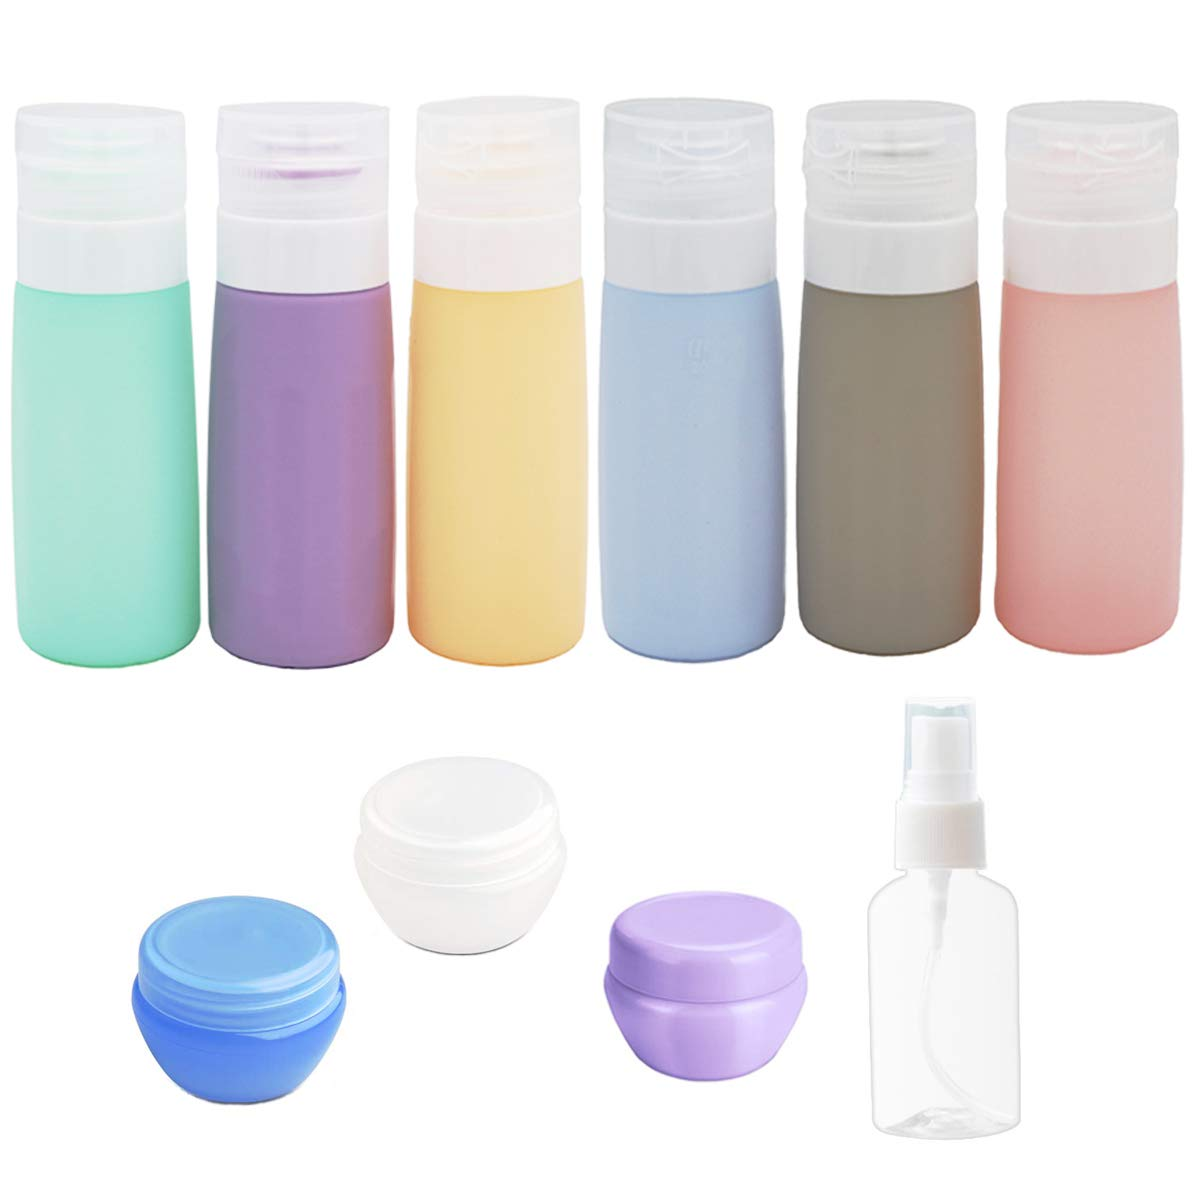 BONDII Silicone Travel Bottles Leakproof Refillable Travel Containers Large 3.3 oz TSA Approved Squeezable Travel Tube Set for Shampoo Lotion Soap